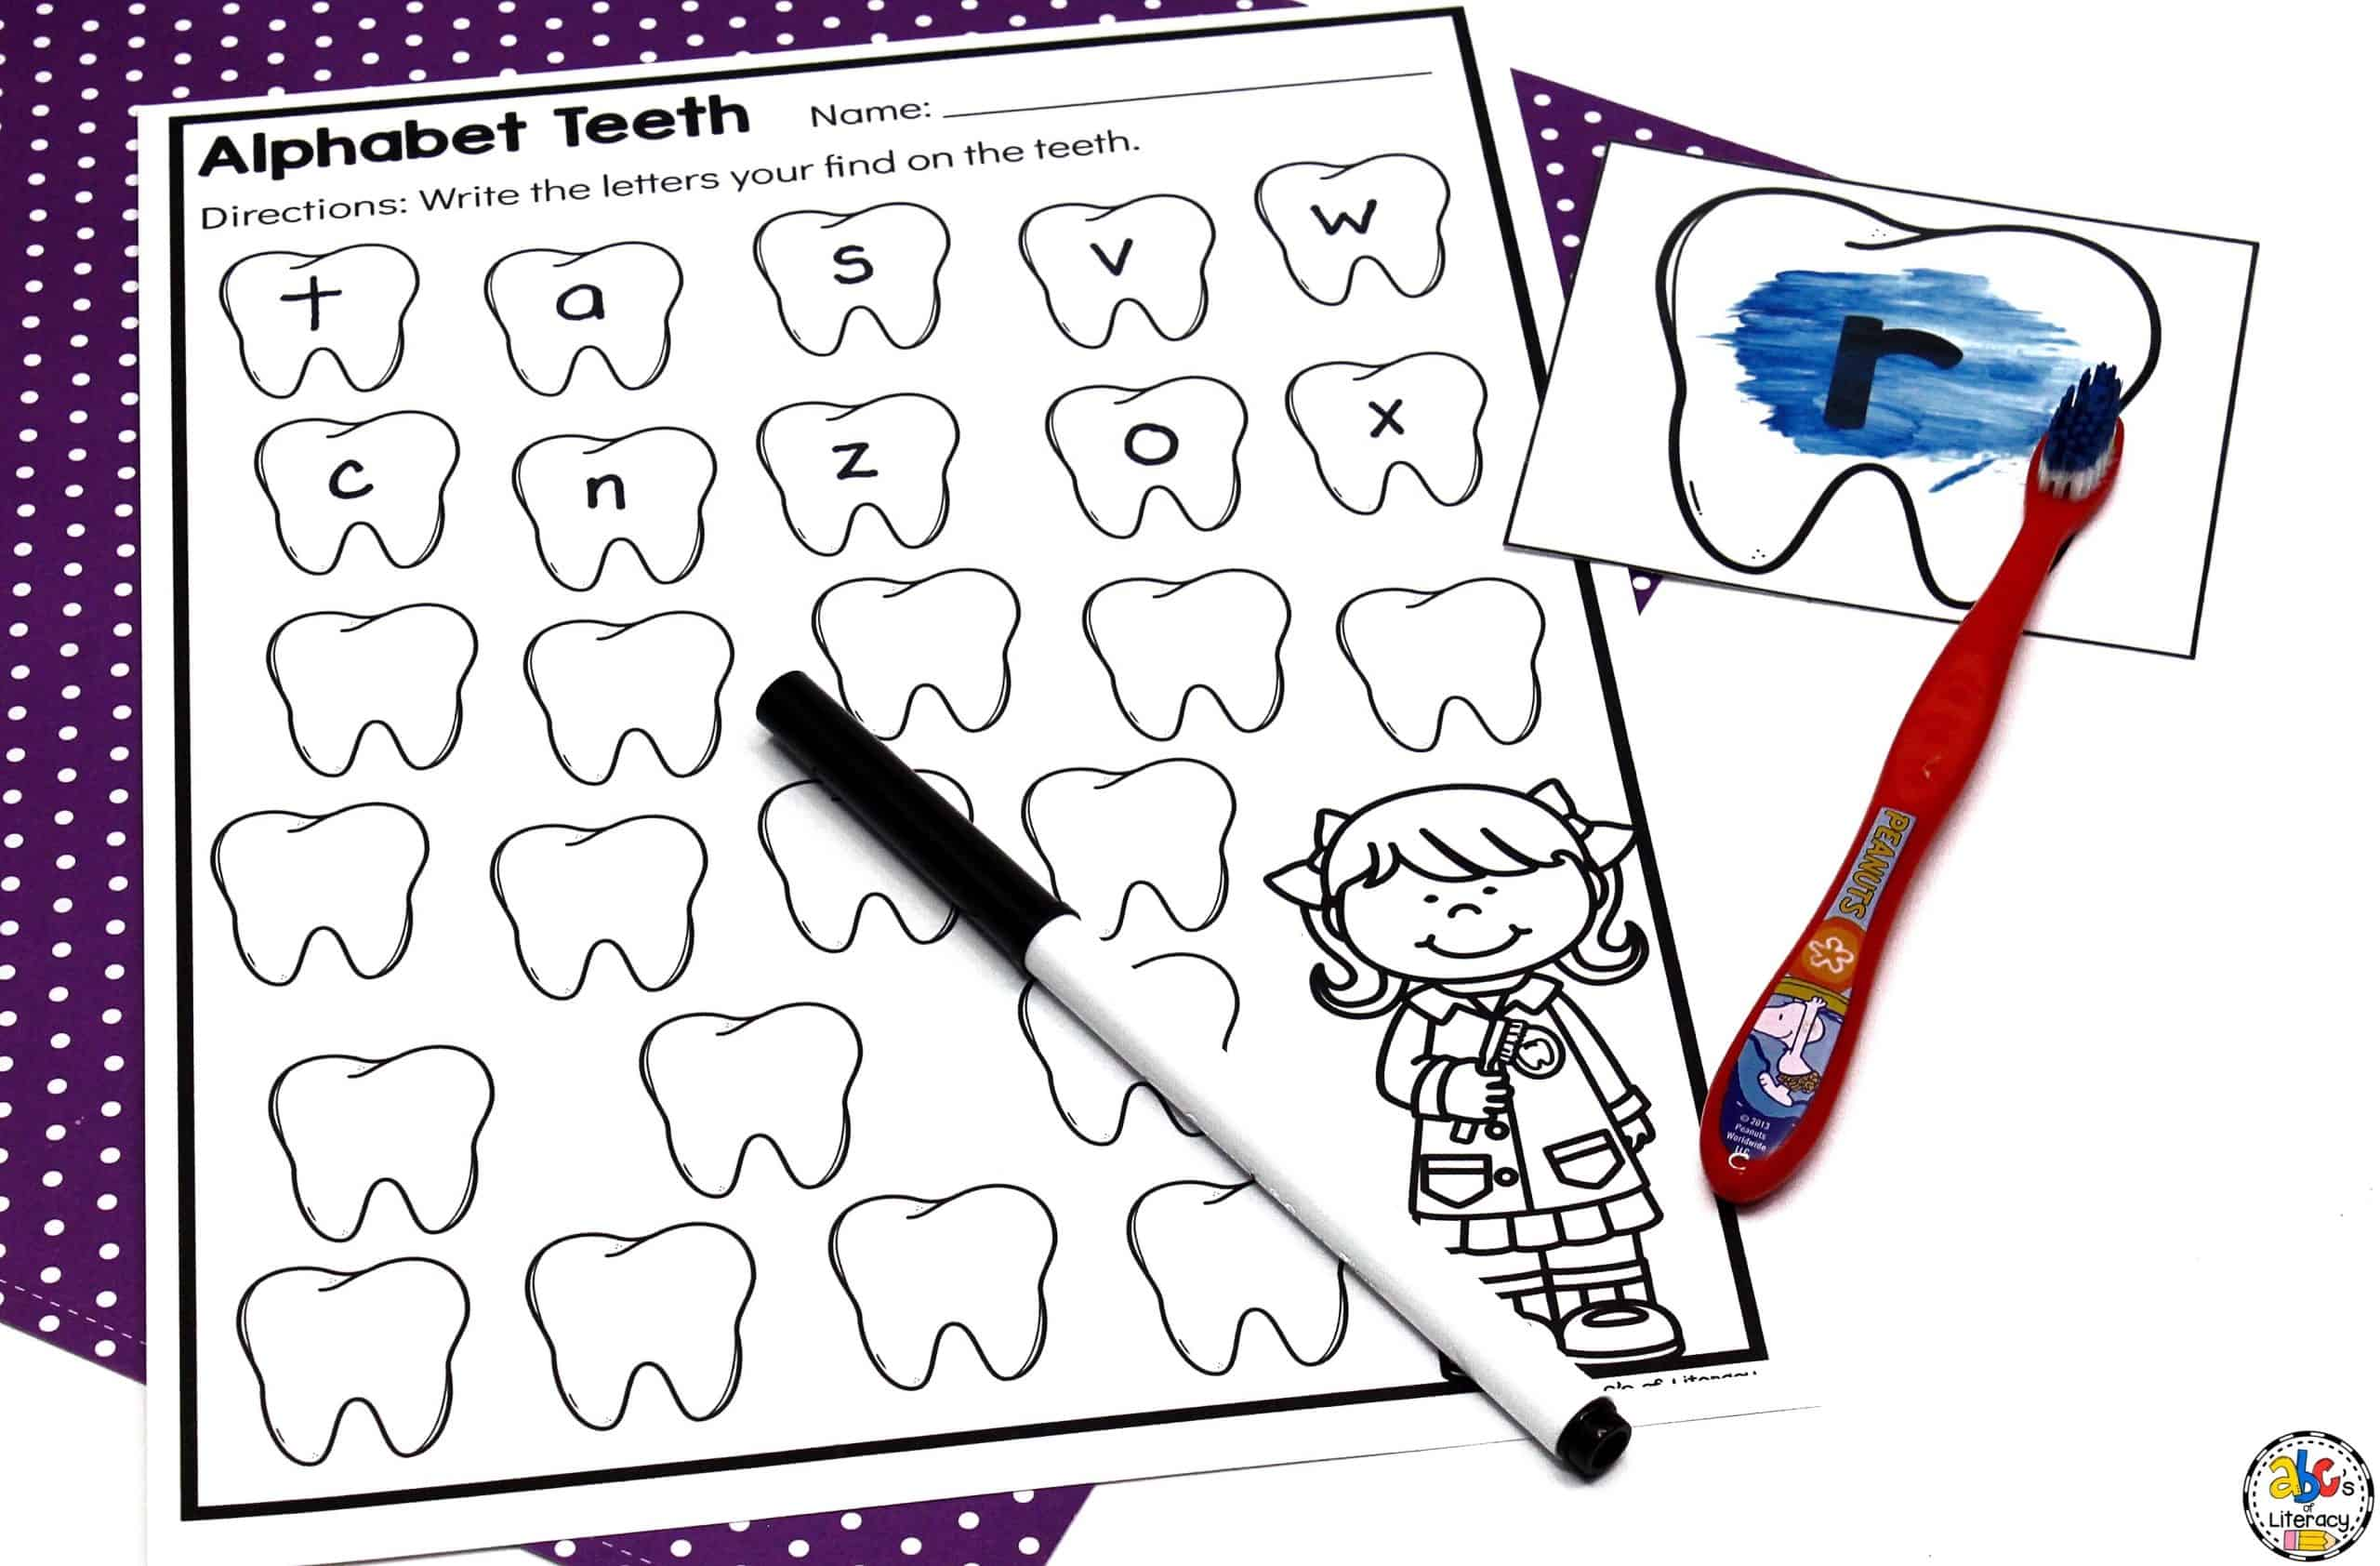 Pre-Reading Activity: Tooth Brushing Letter Activity